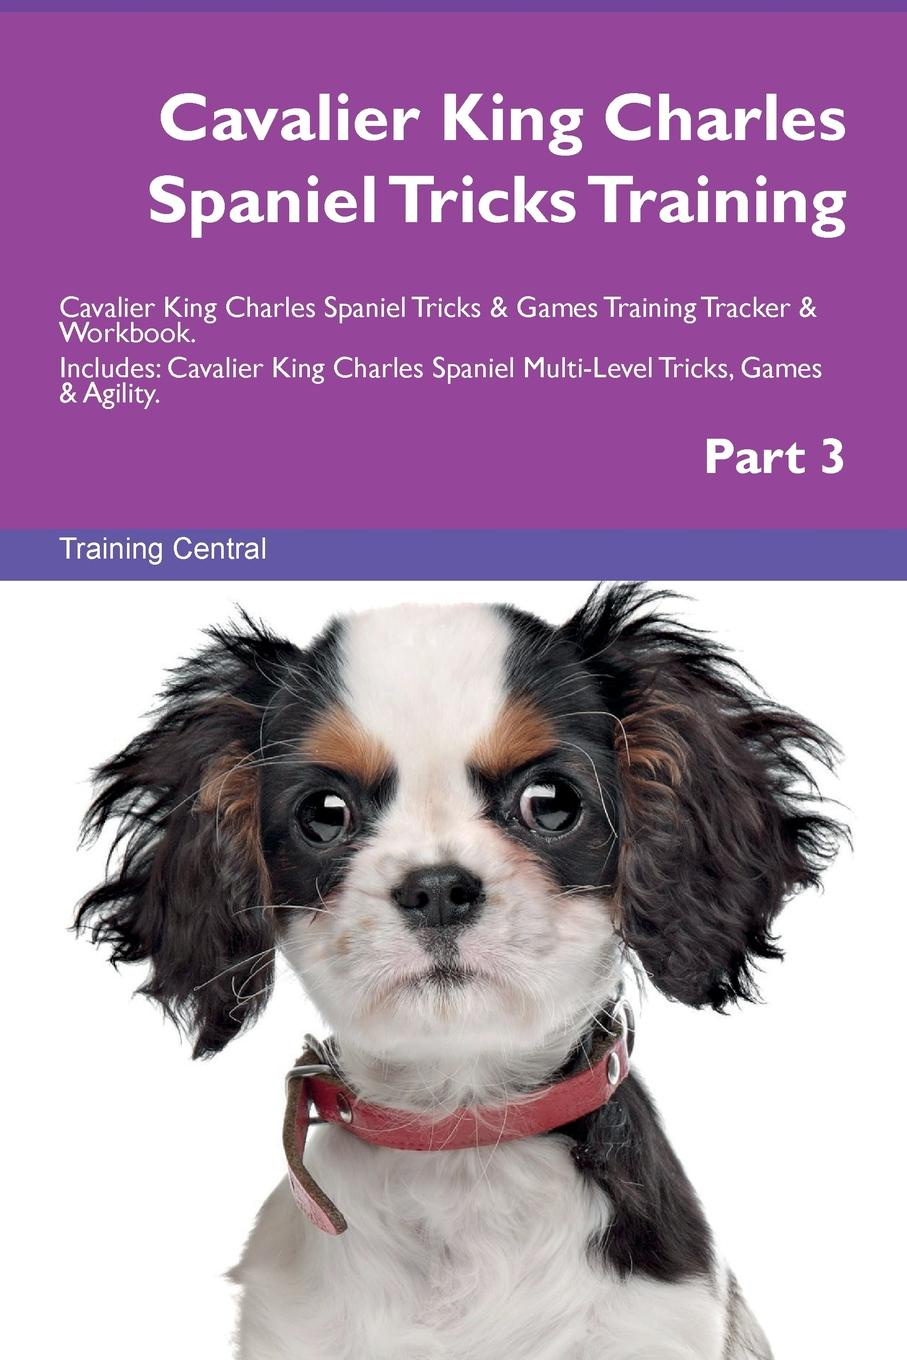 Training Central Cavalier King Charles Spaniel Tricks Training Cavalier King Charles Spaniel Tricks . Games Training Tracker . Workbook. Includes. Cavalier King Charles Spaniel Multi-Level Tricks, Games . Agility. Part 3 цена 2017